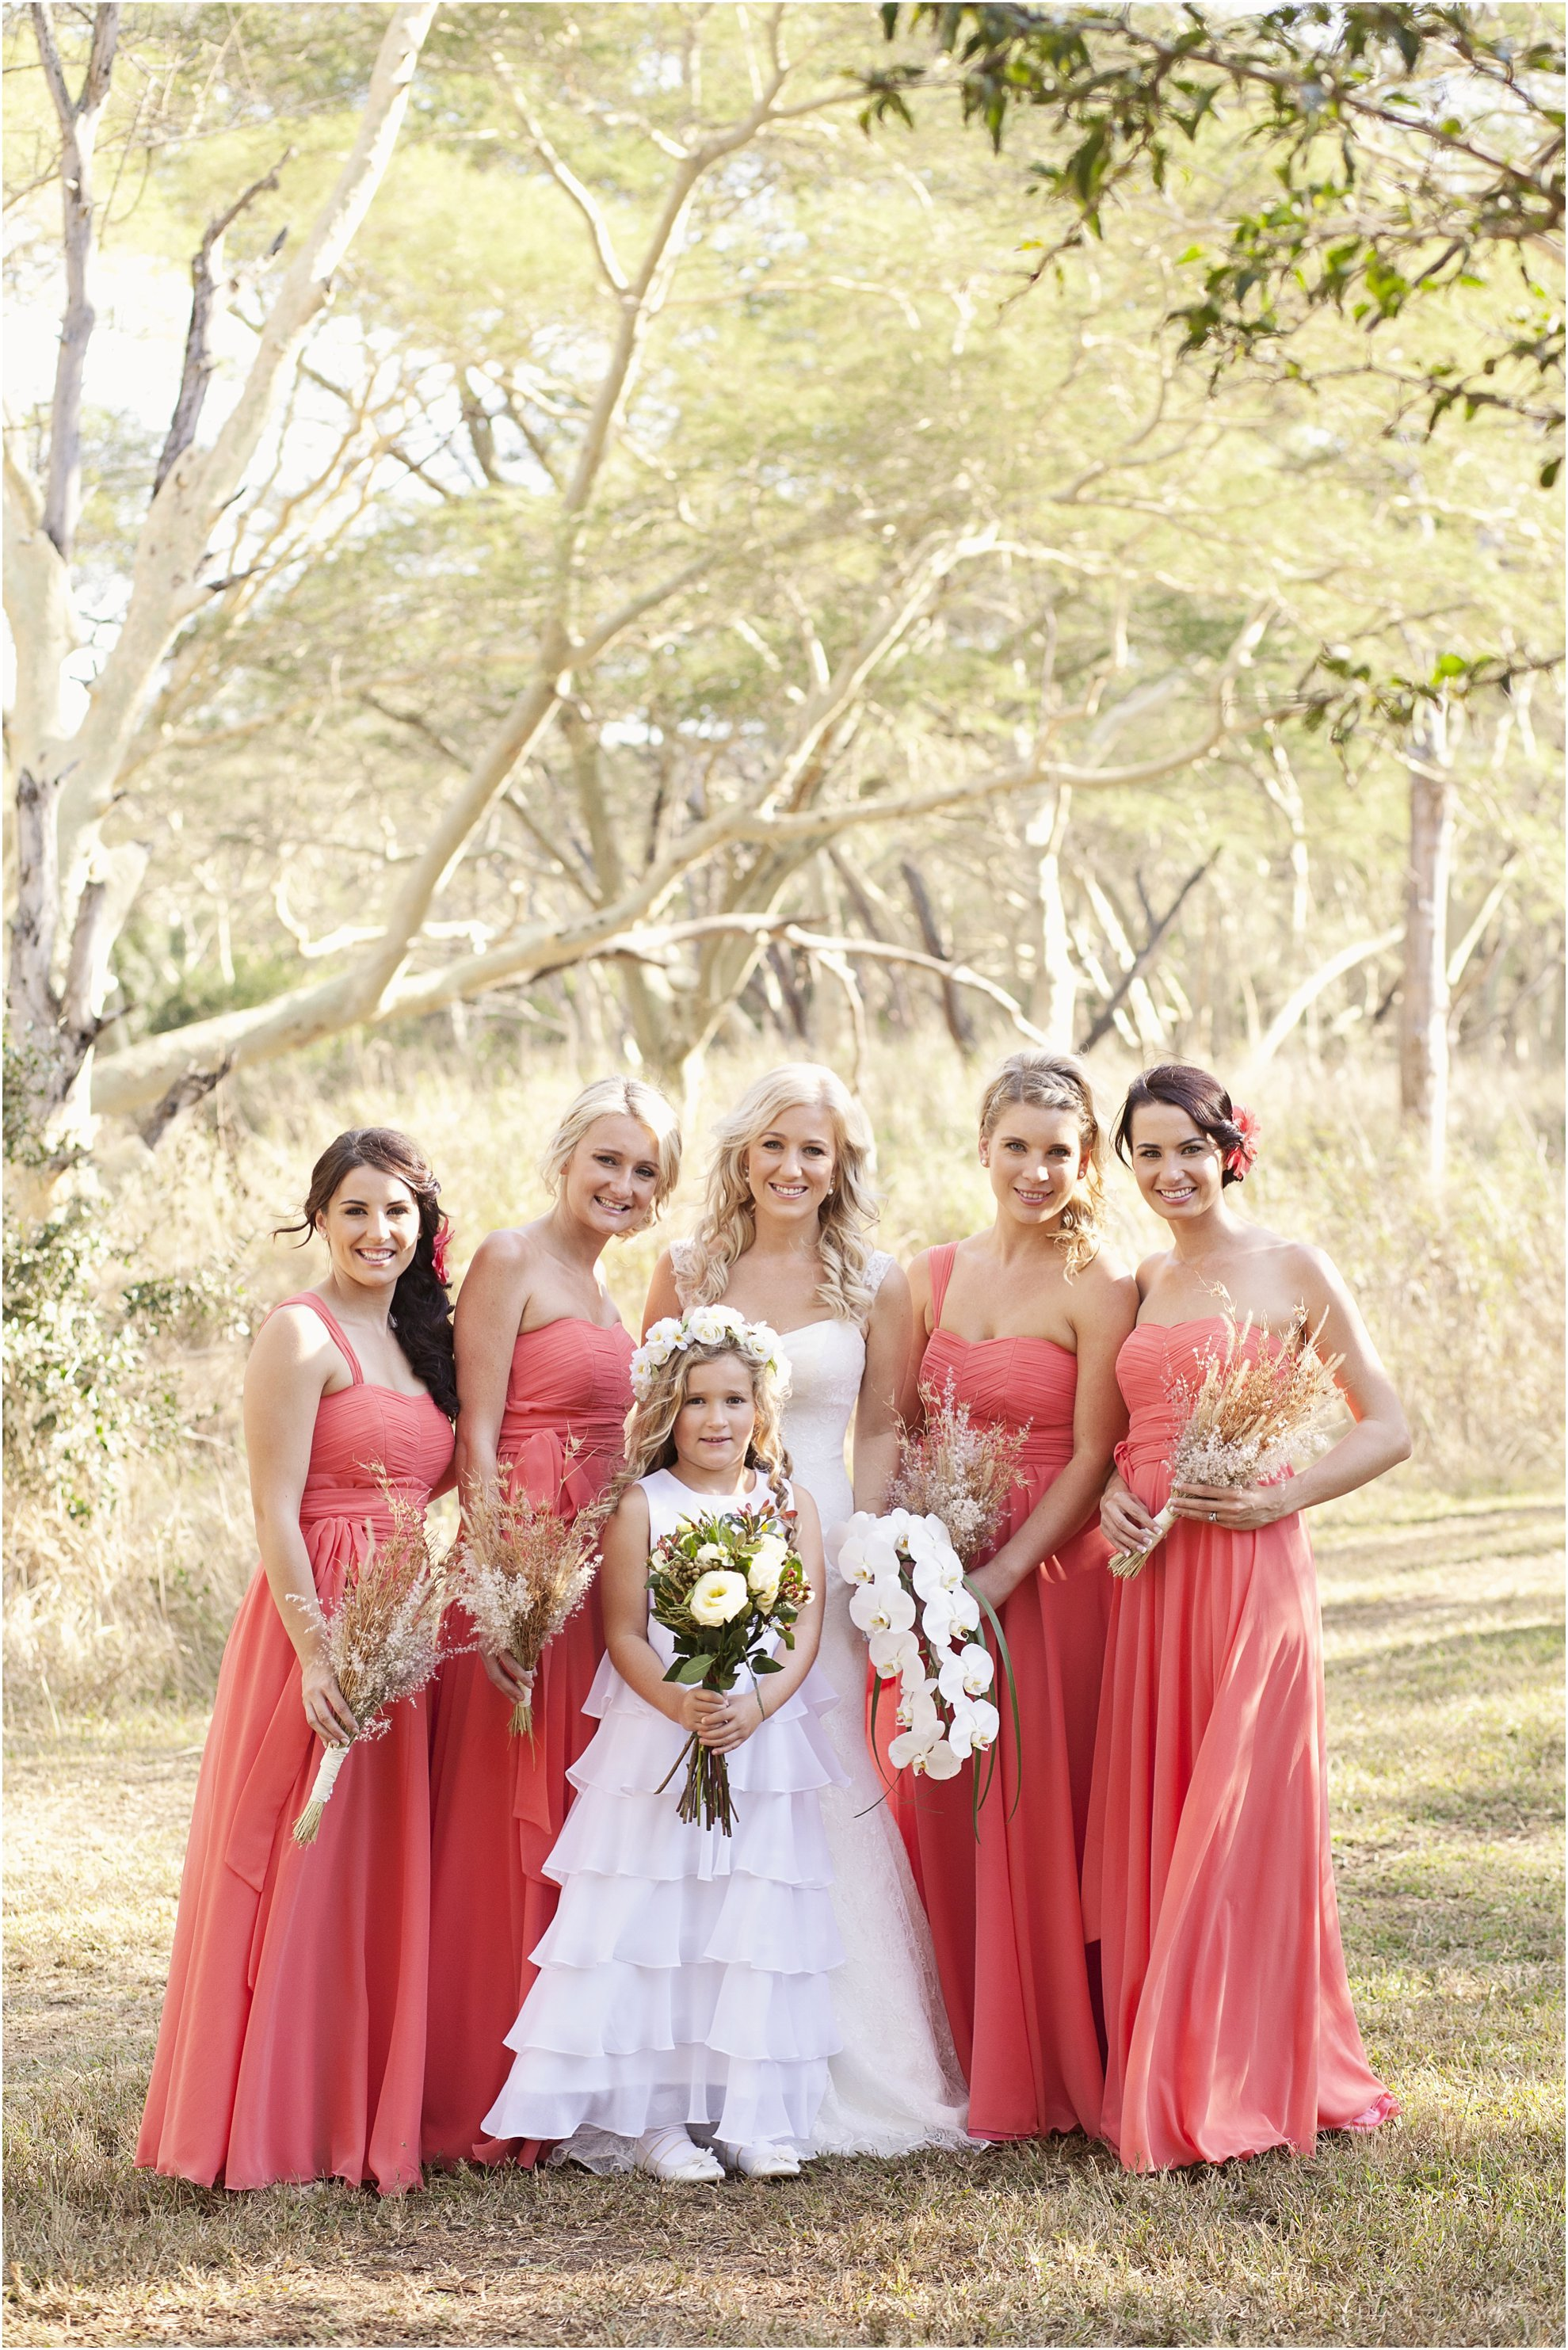 FIONA CLAIR PHOTOGRAPHY Jean & Natalie Swart 01 06 2013_0045